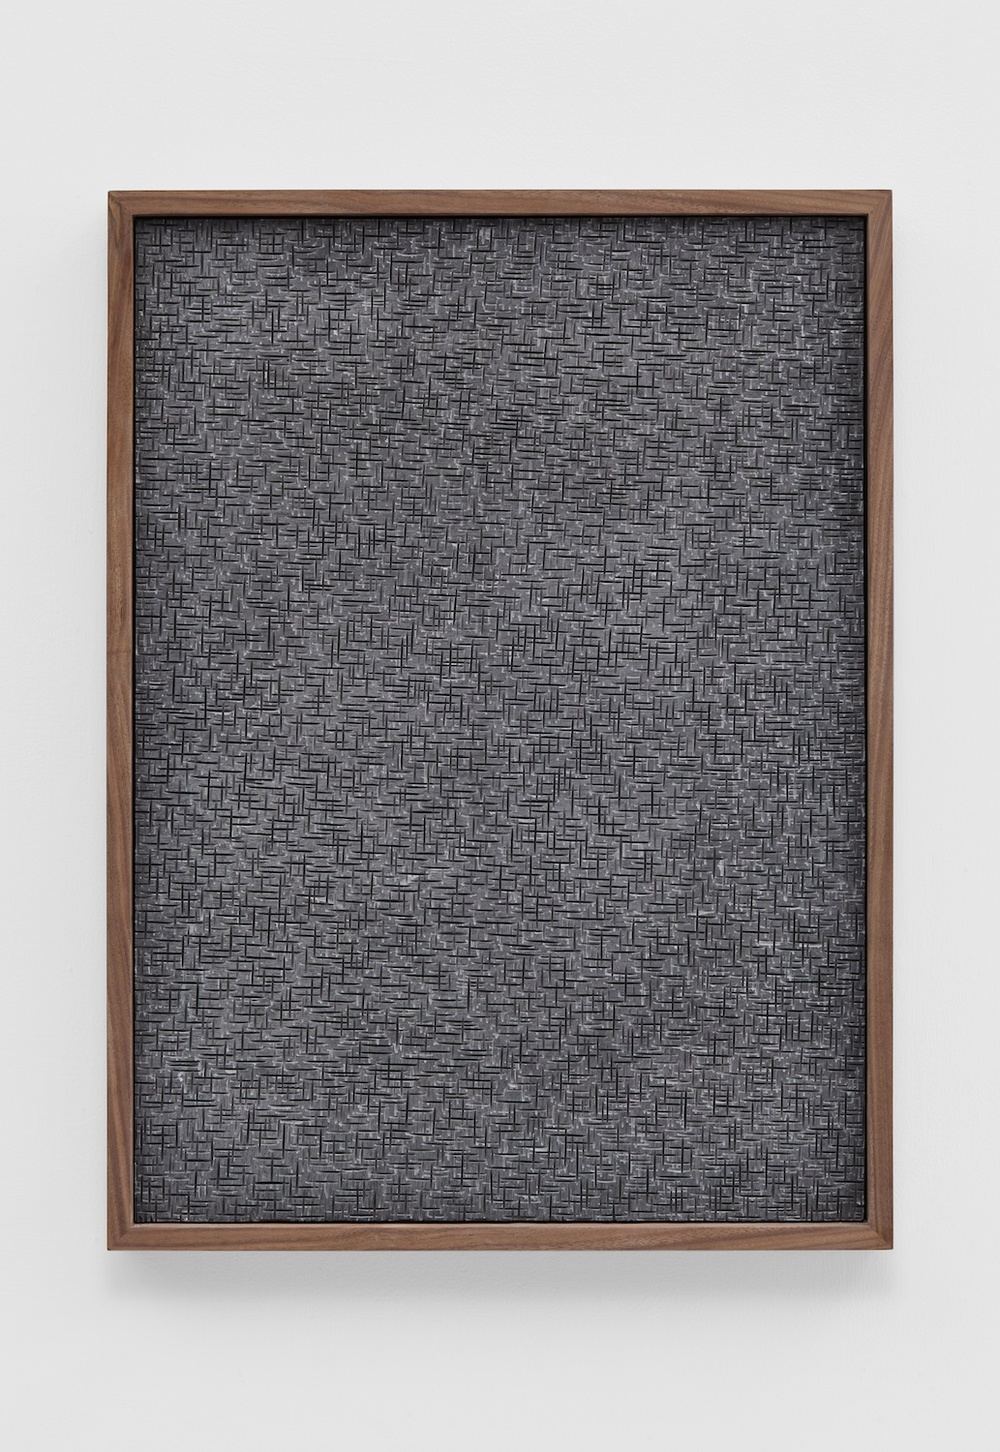 "Anthony Pearson Untitled (Etched Plaster) 2014 Pigmented hydrocal in walnut frame 24 1/2"" x 18 1/2"" x 2 1/4"" AP359"